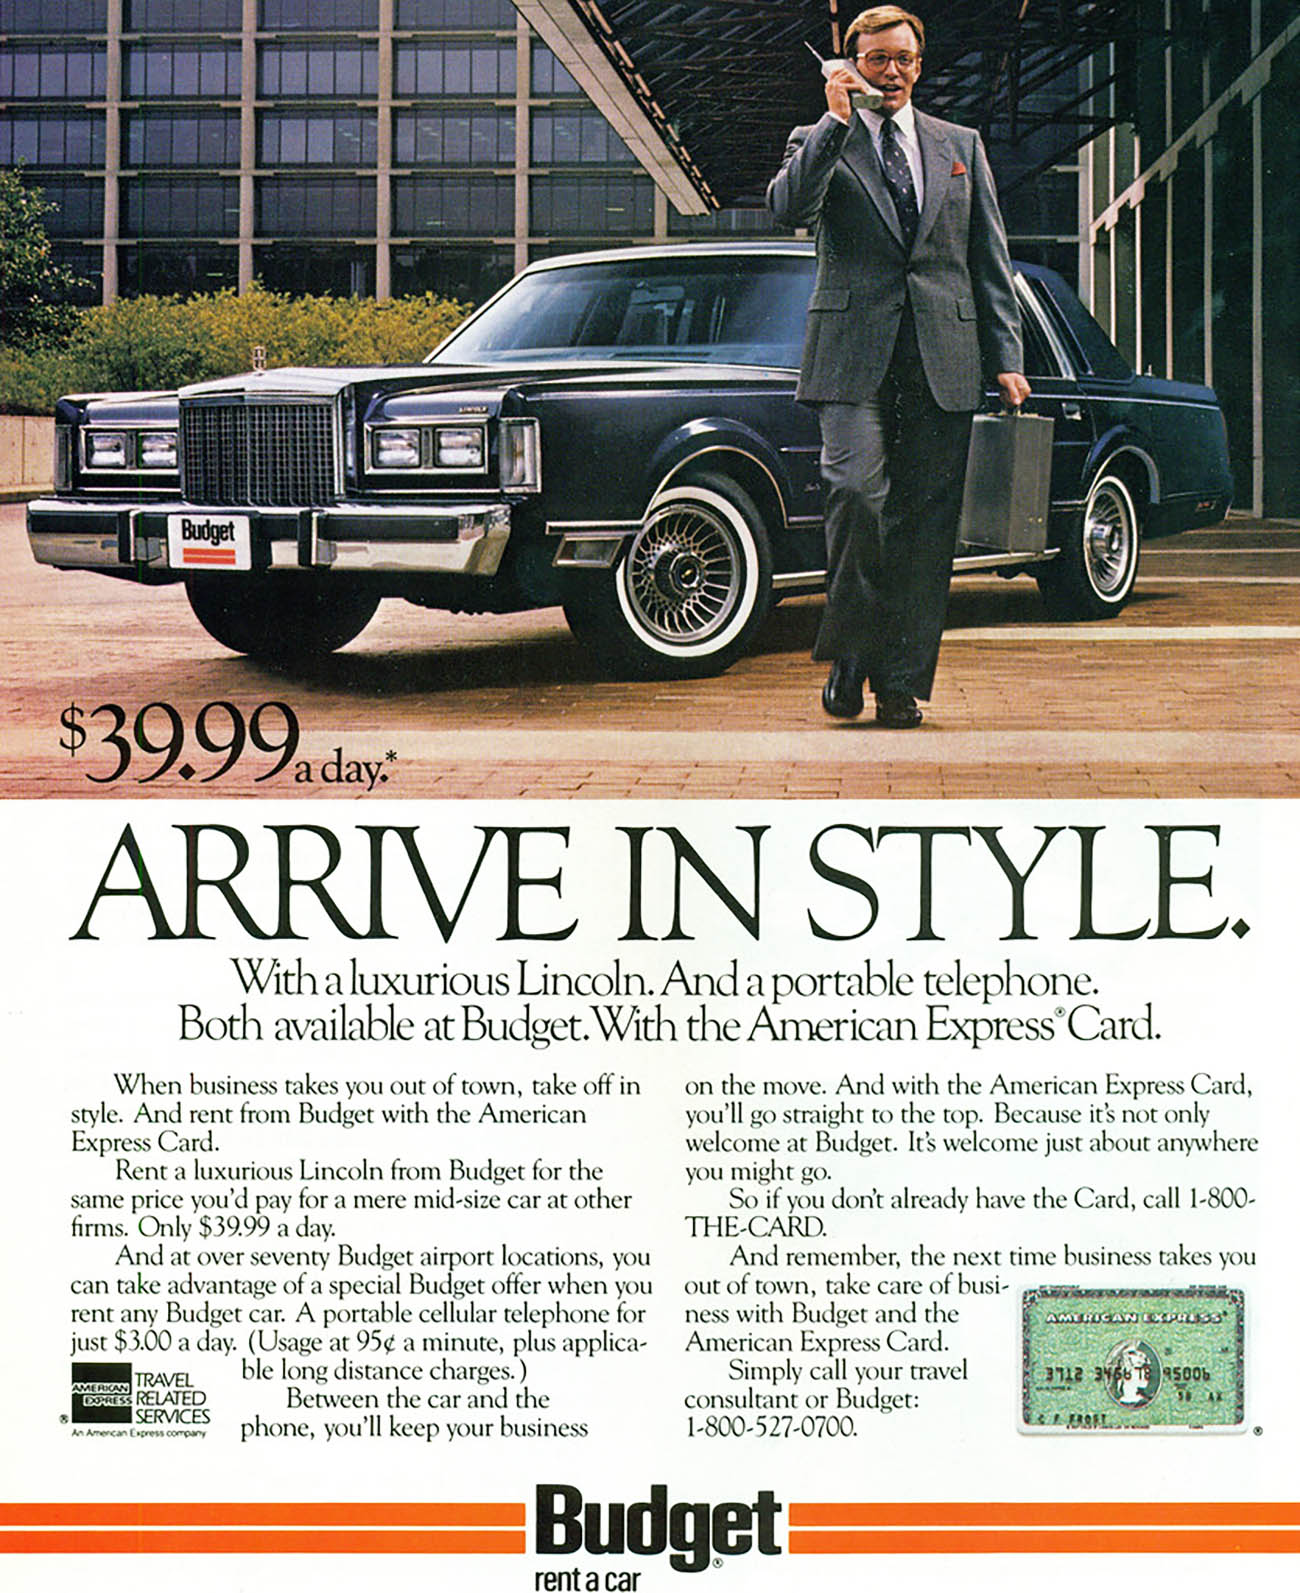 1988 Budget Ad (1988 Lincoln Town Car)